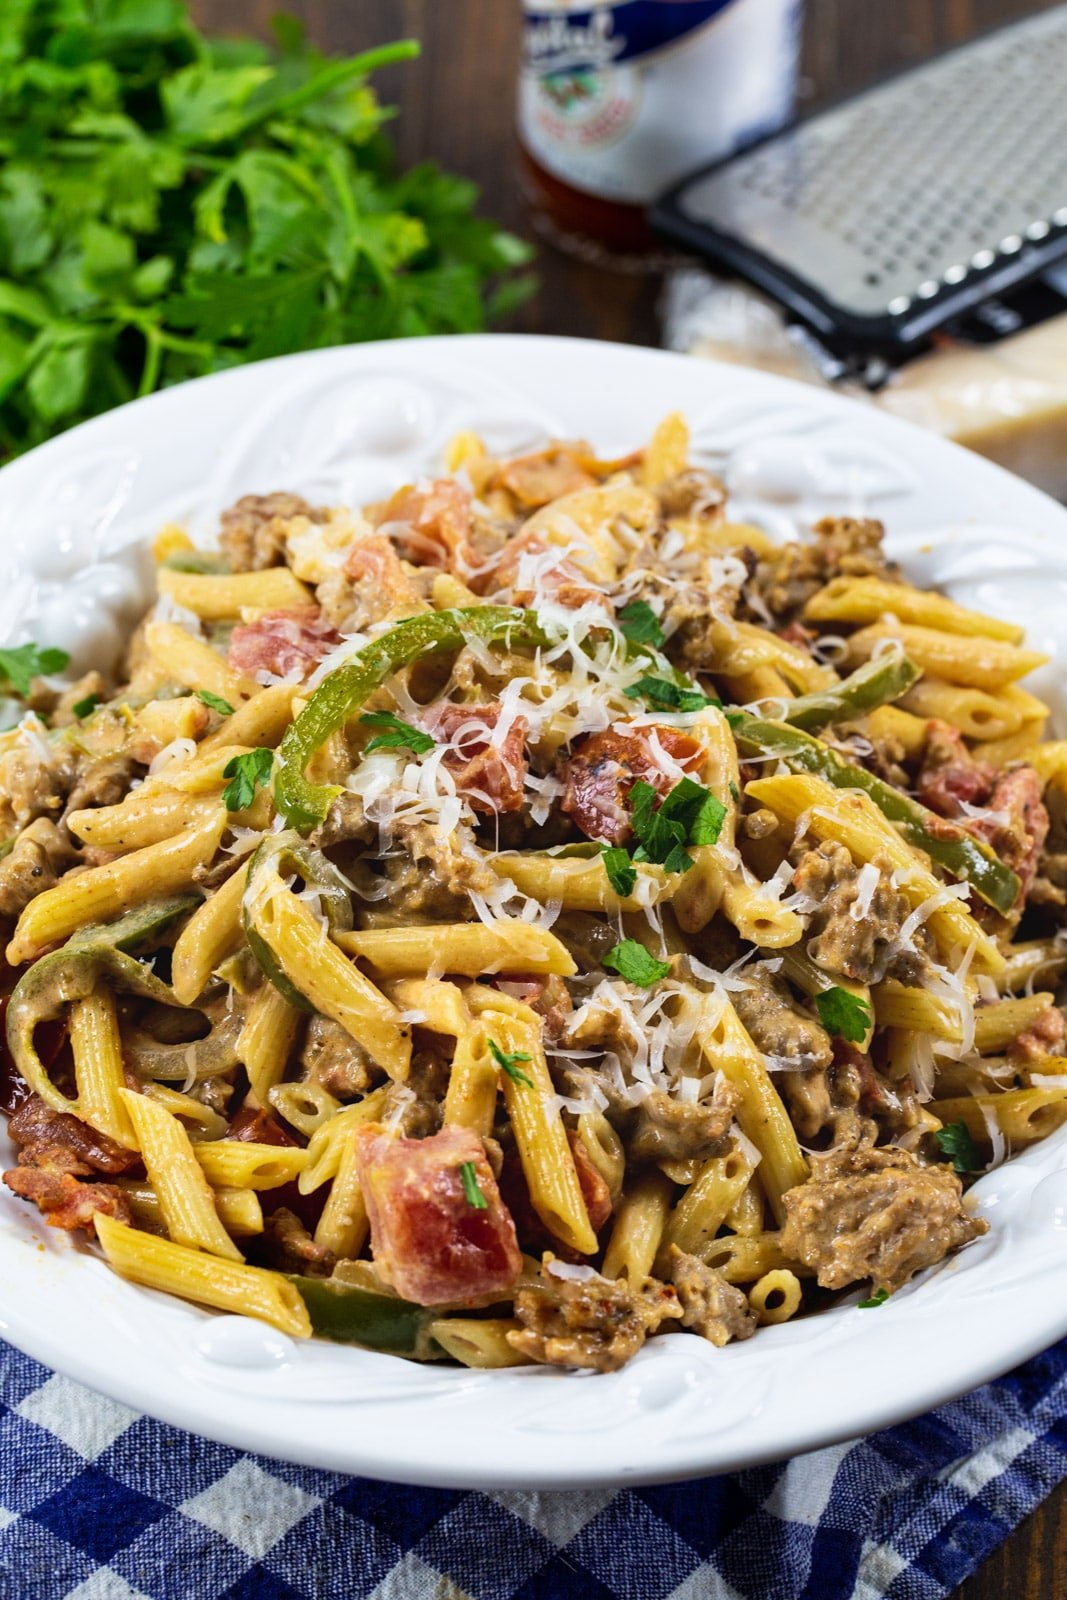 Cajun Pasta in a bowl and a bunch of parsley.